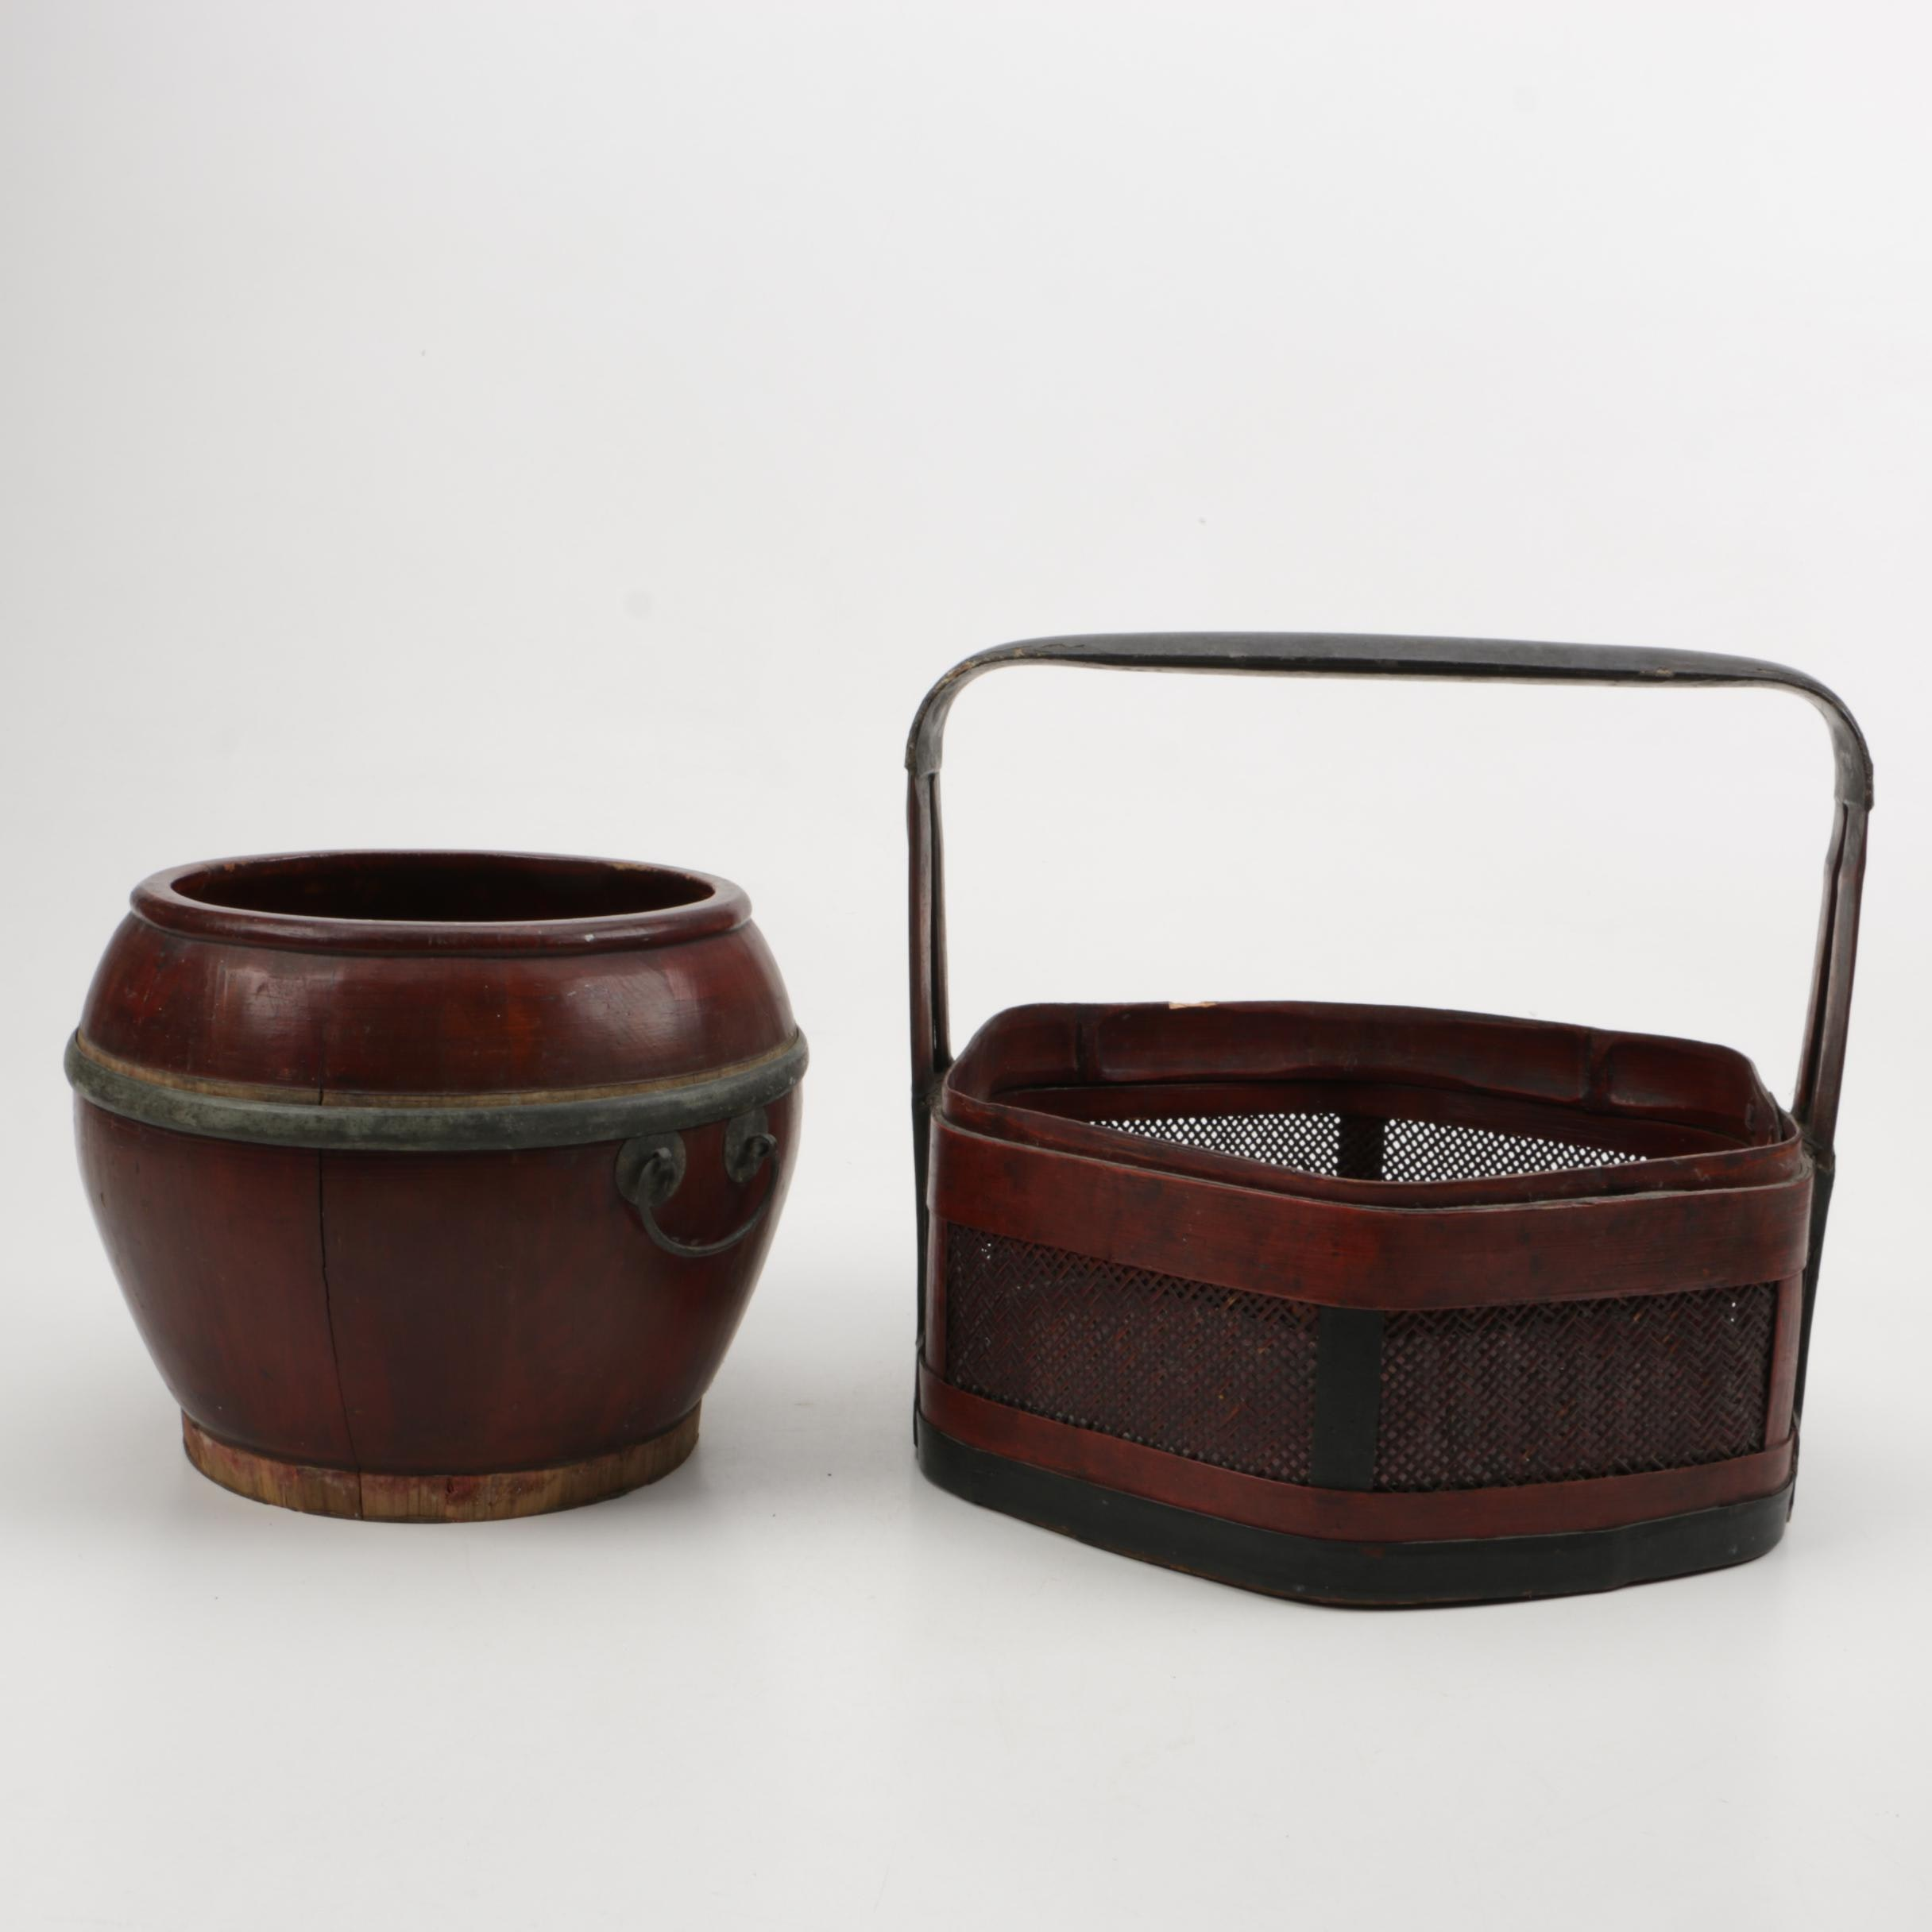 Chinese Wooden Lunch Baskets